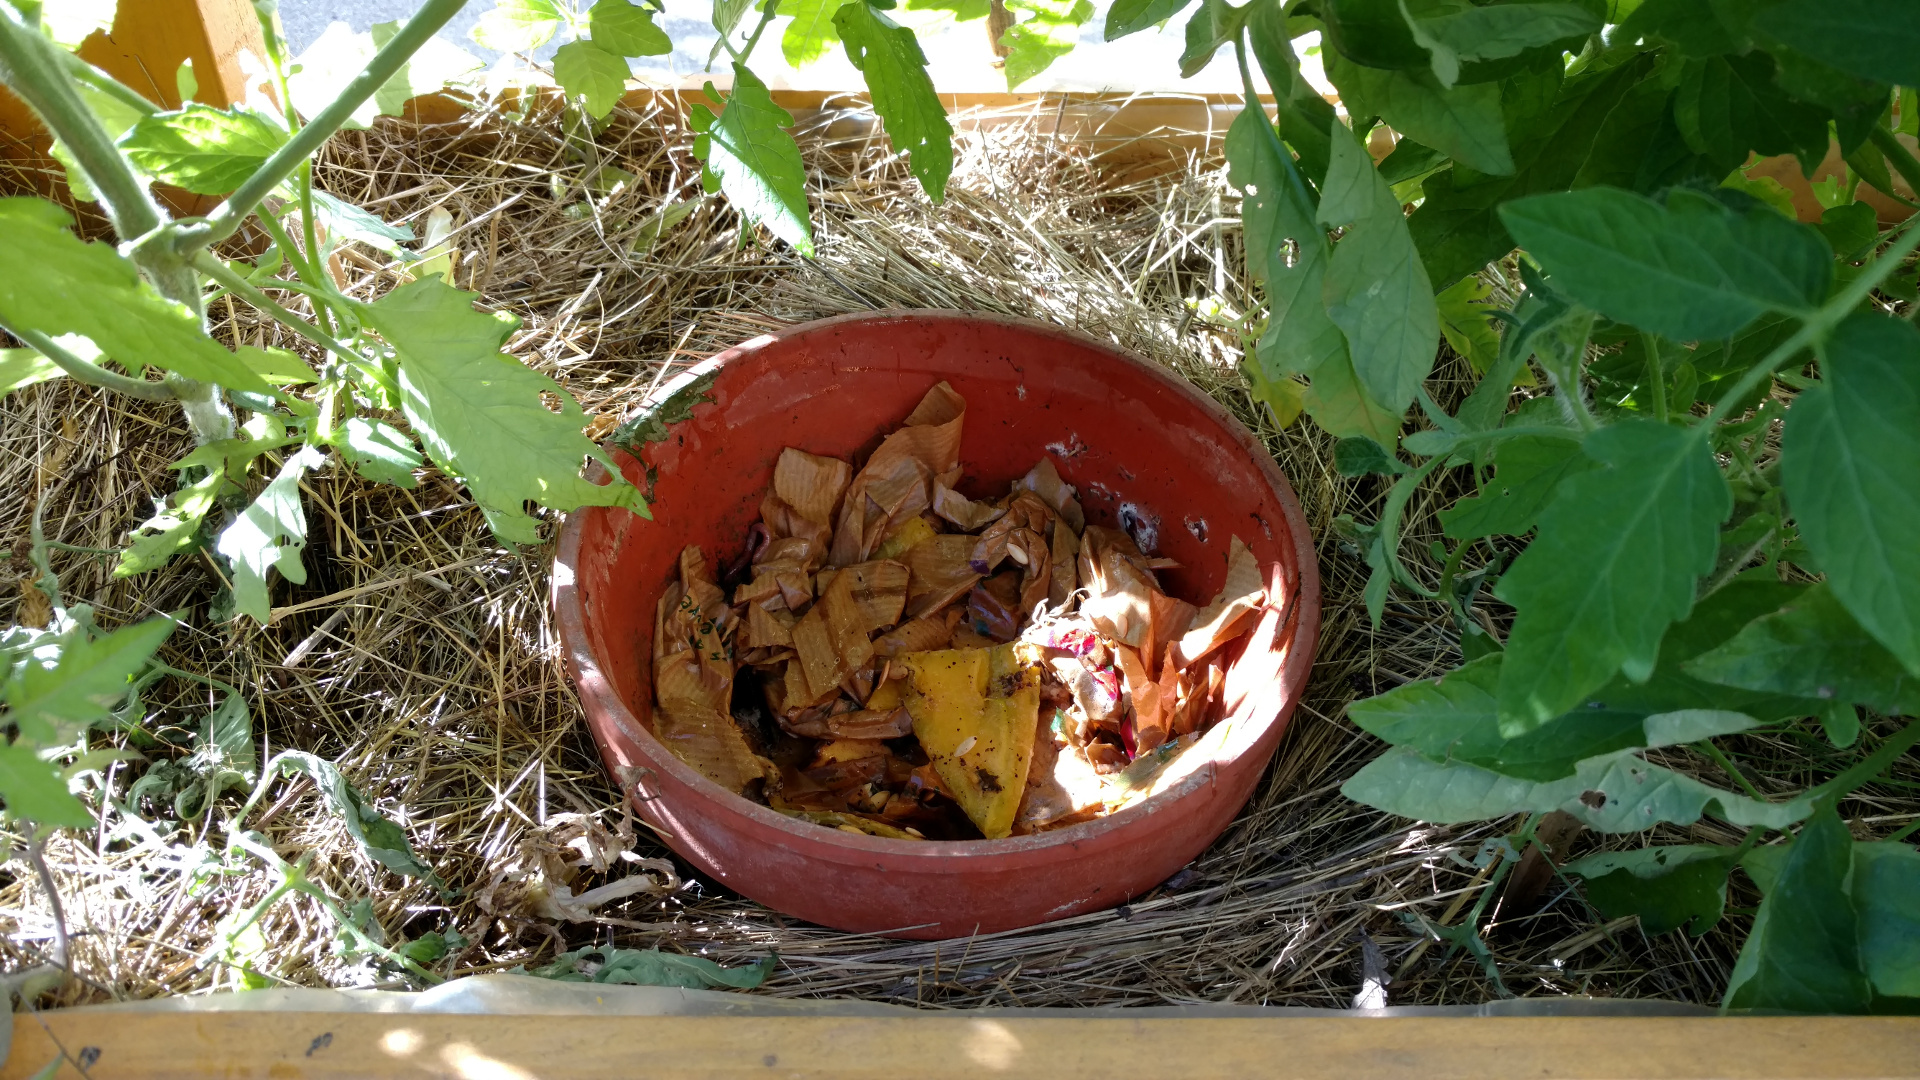 lombricompost-permaculture-balcon-potager-compost